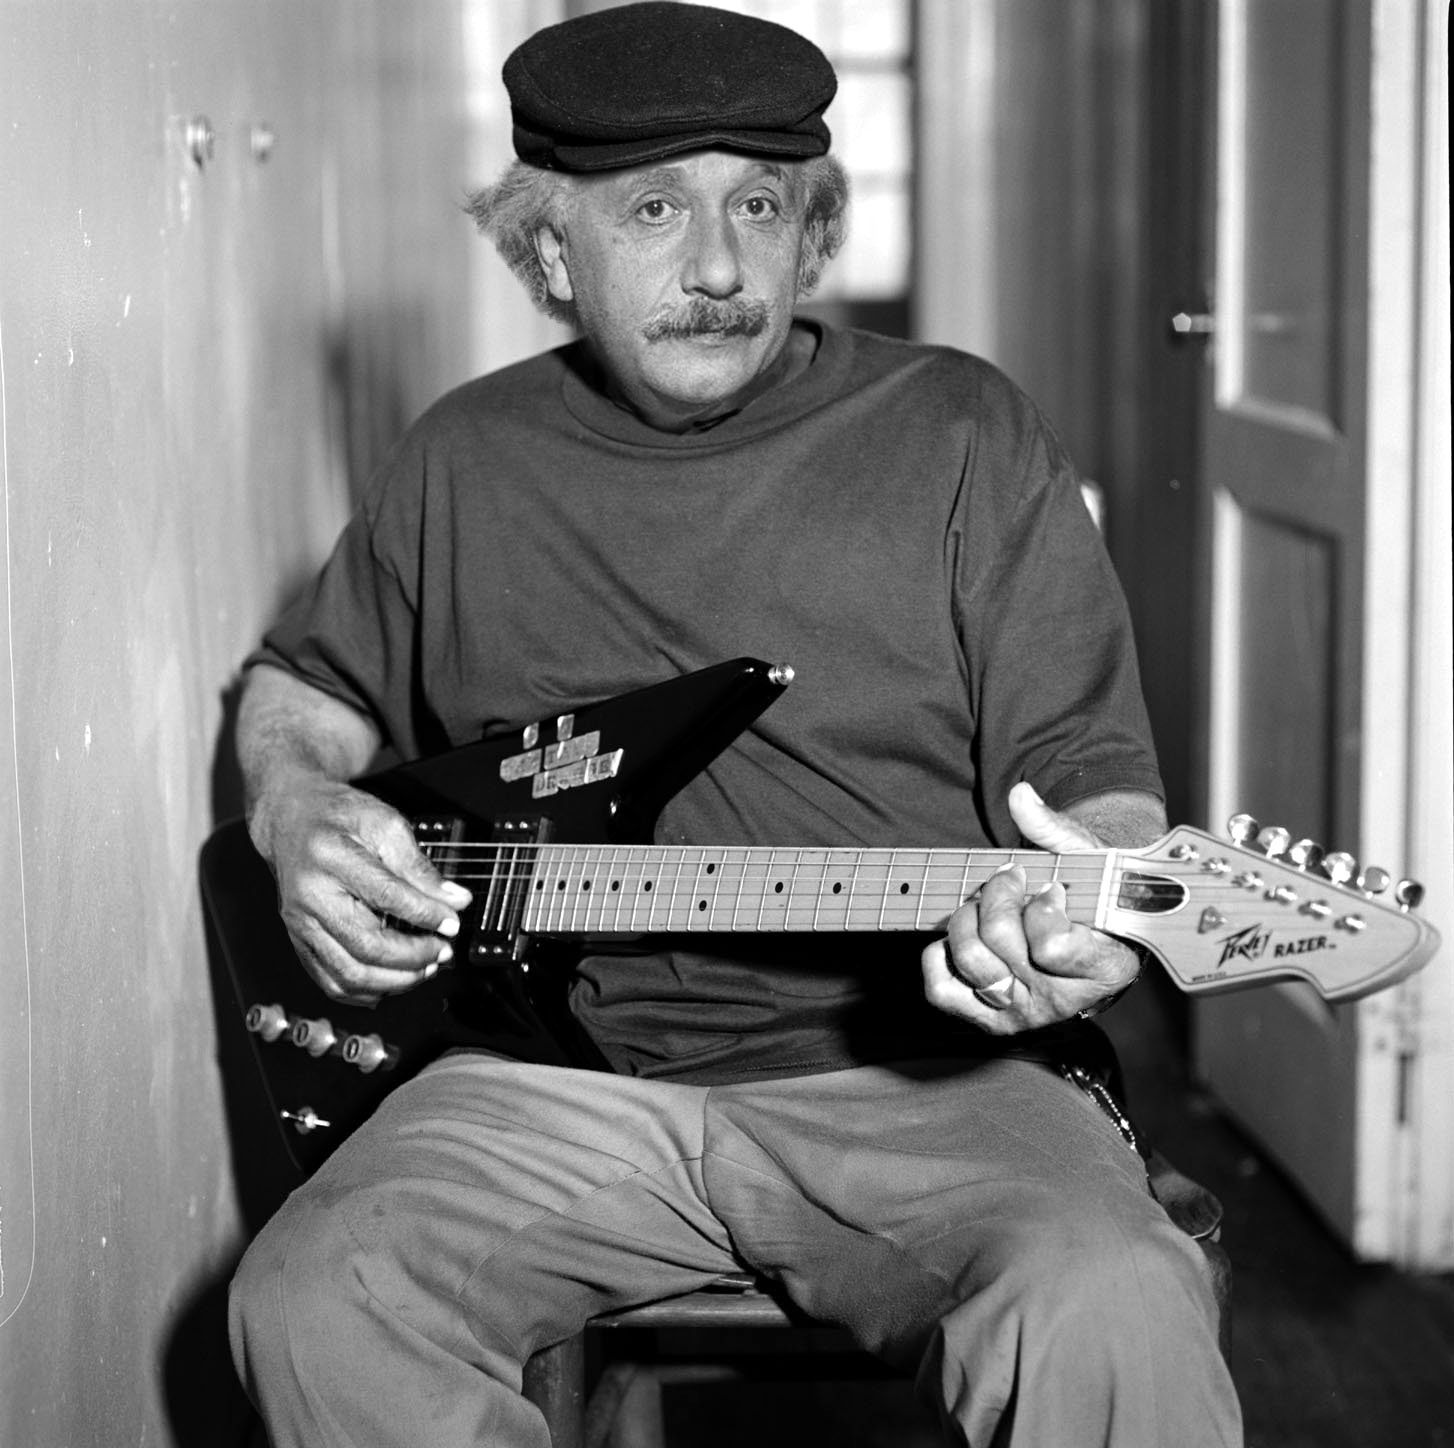 albert-punk-rock-blues-einstein-165371.jpg